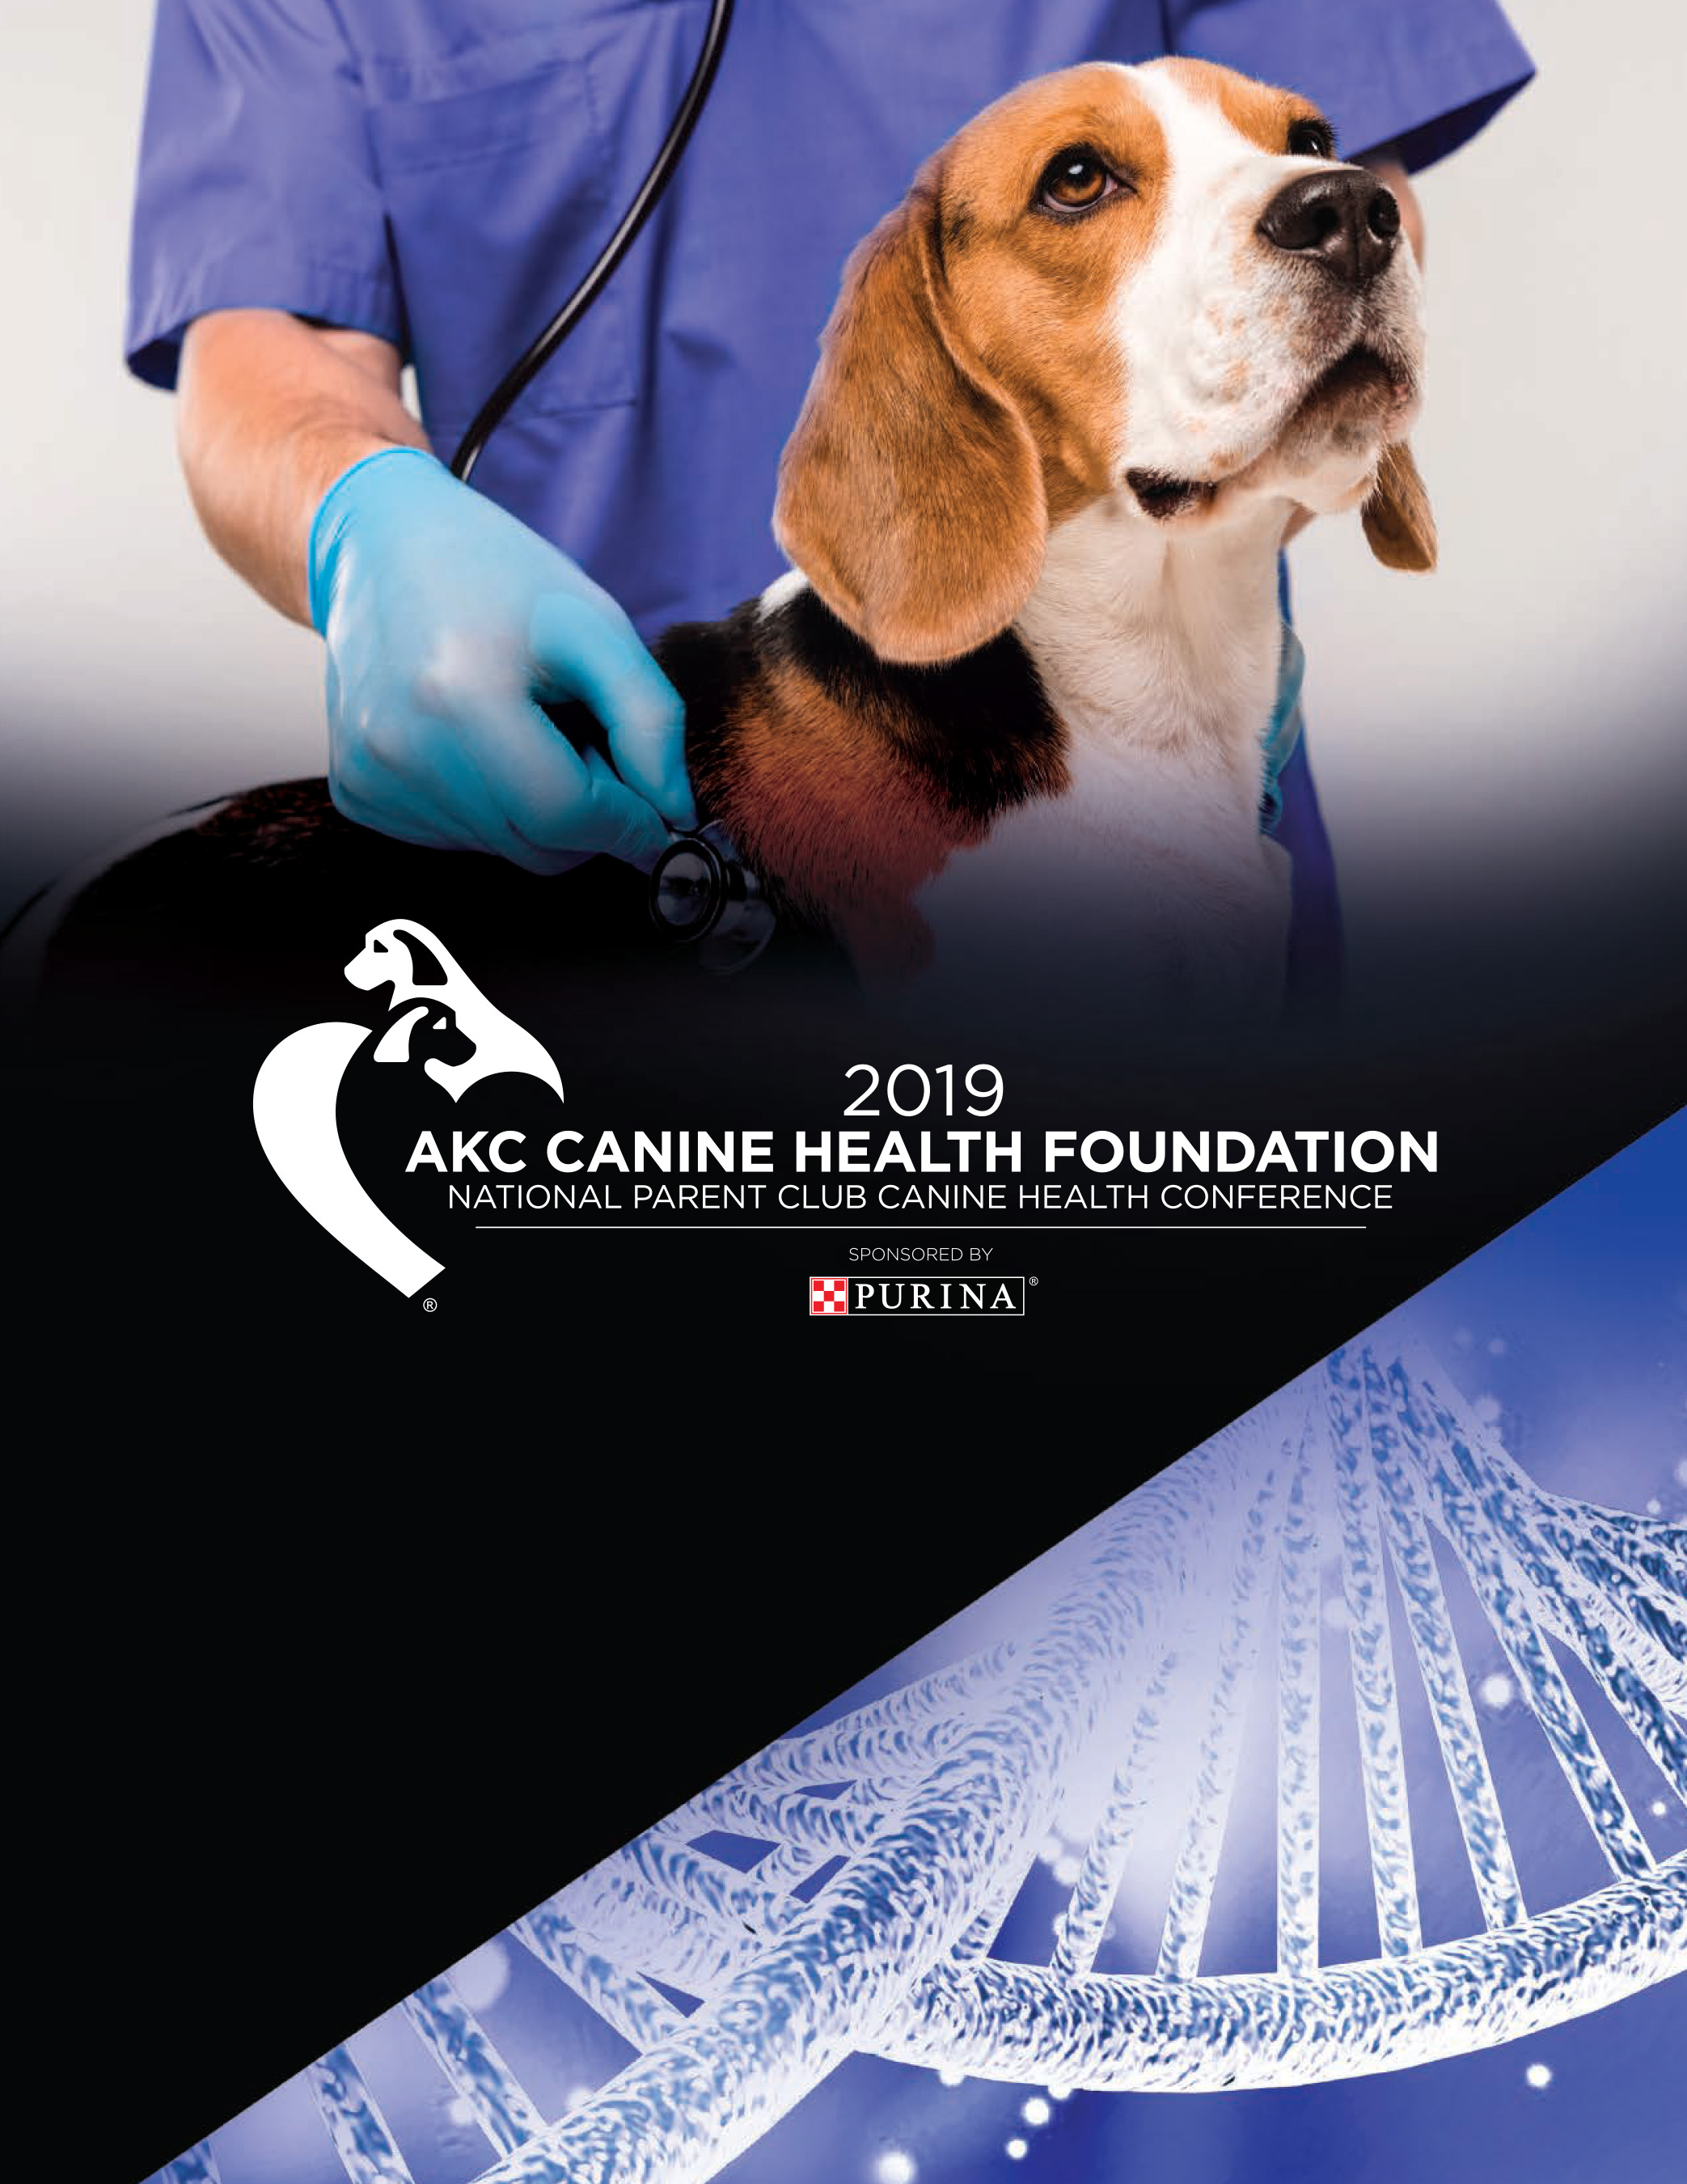 AKC Canine Health Foundation National Parent Club Canine Health Conference